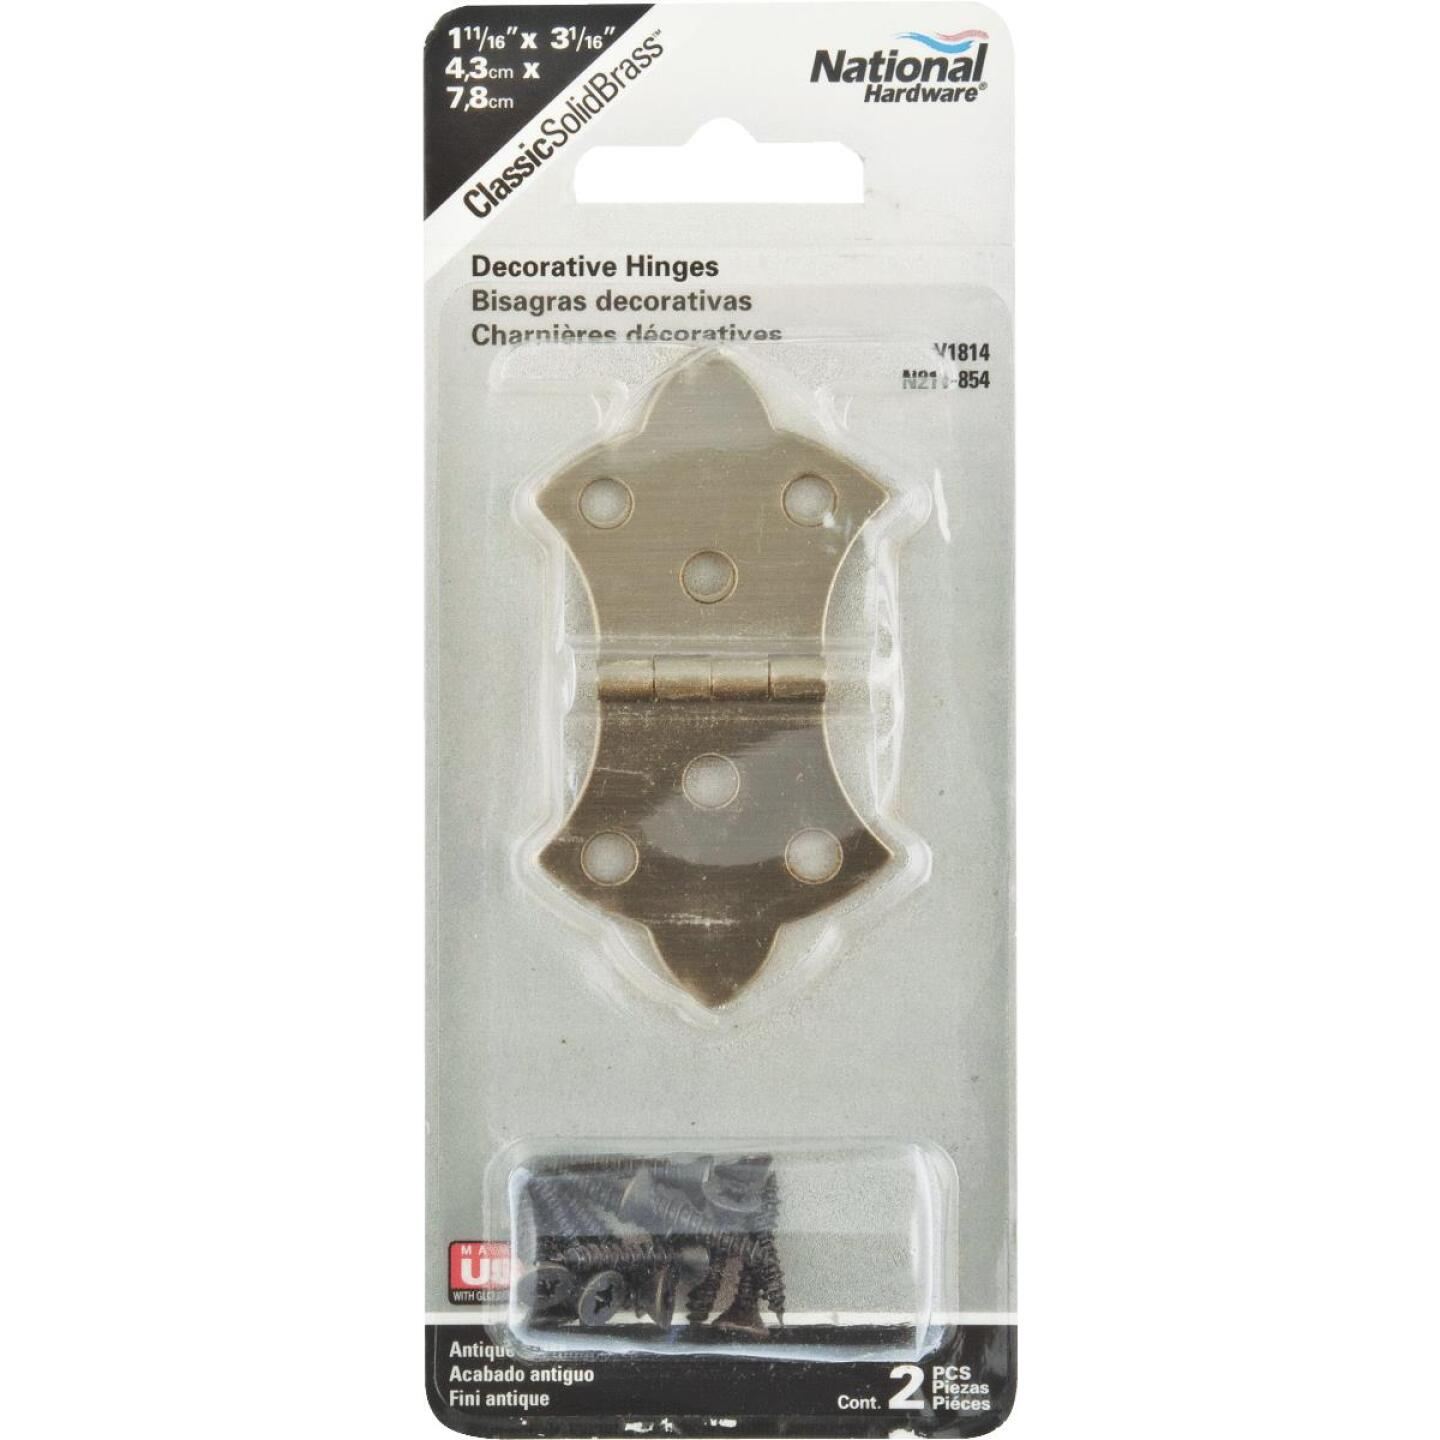 National 1-11/16 In. x 3-1/16 In. Antique Brass Hinge (2-Pack) Image 2